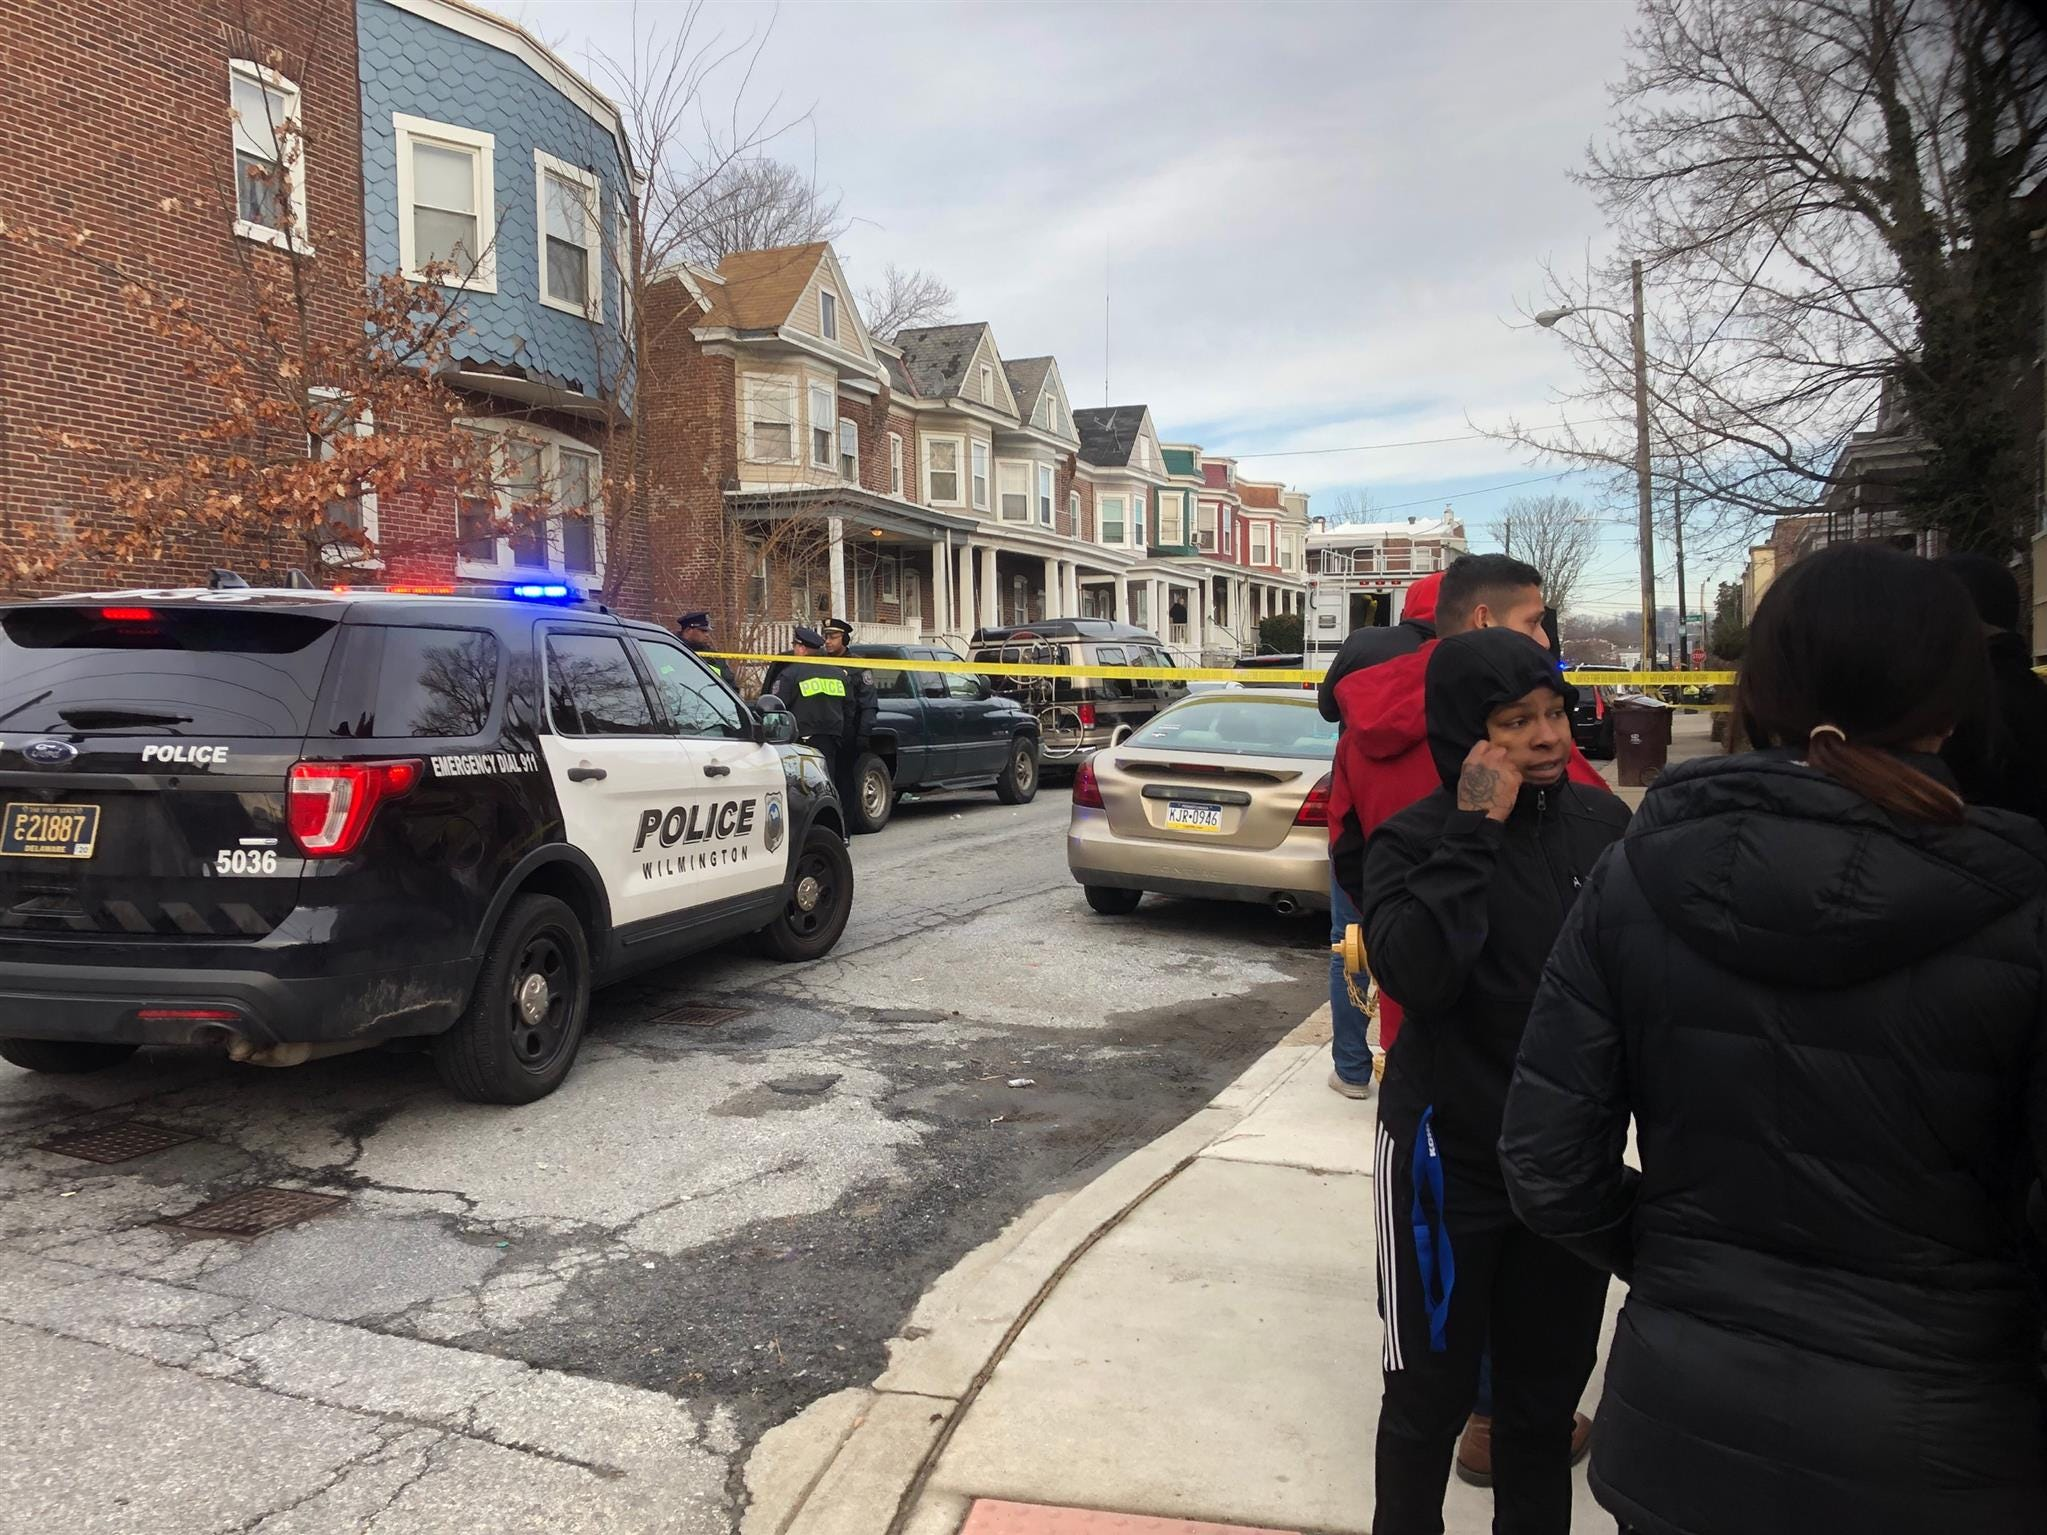 A neighbor said two teens were killed in a home invasion on West 26th Street in Wilmington on Monday, March 11, 2019.